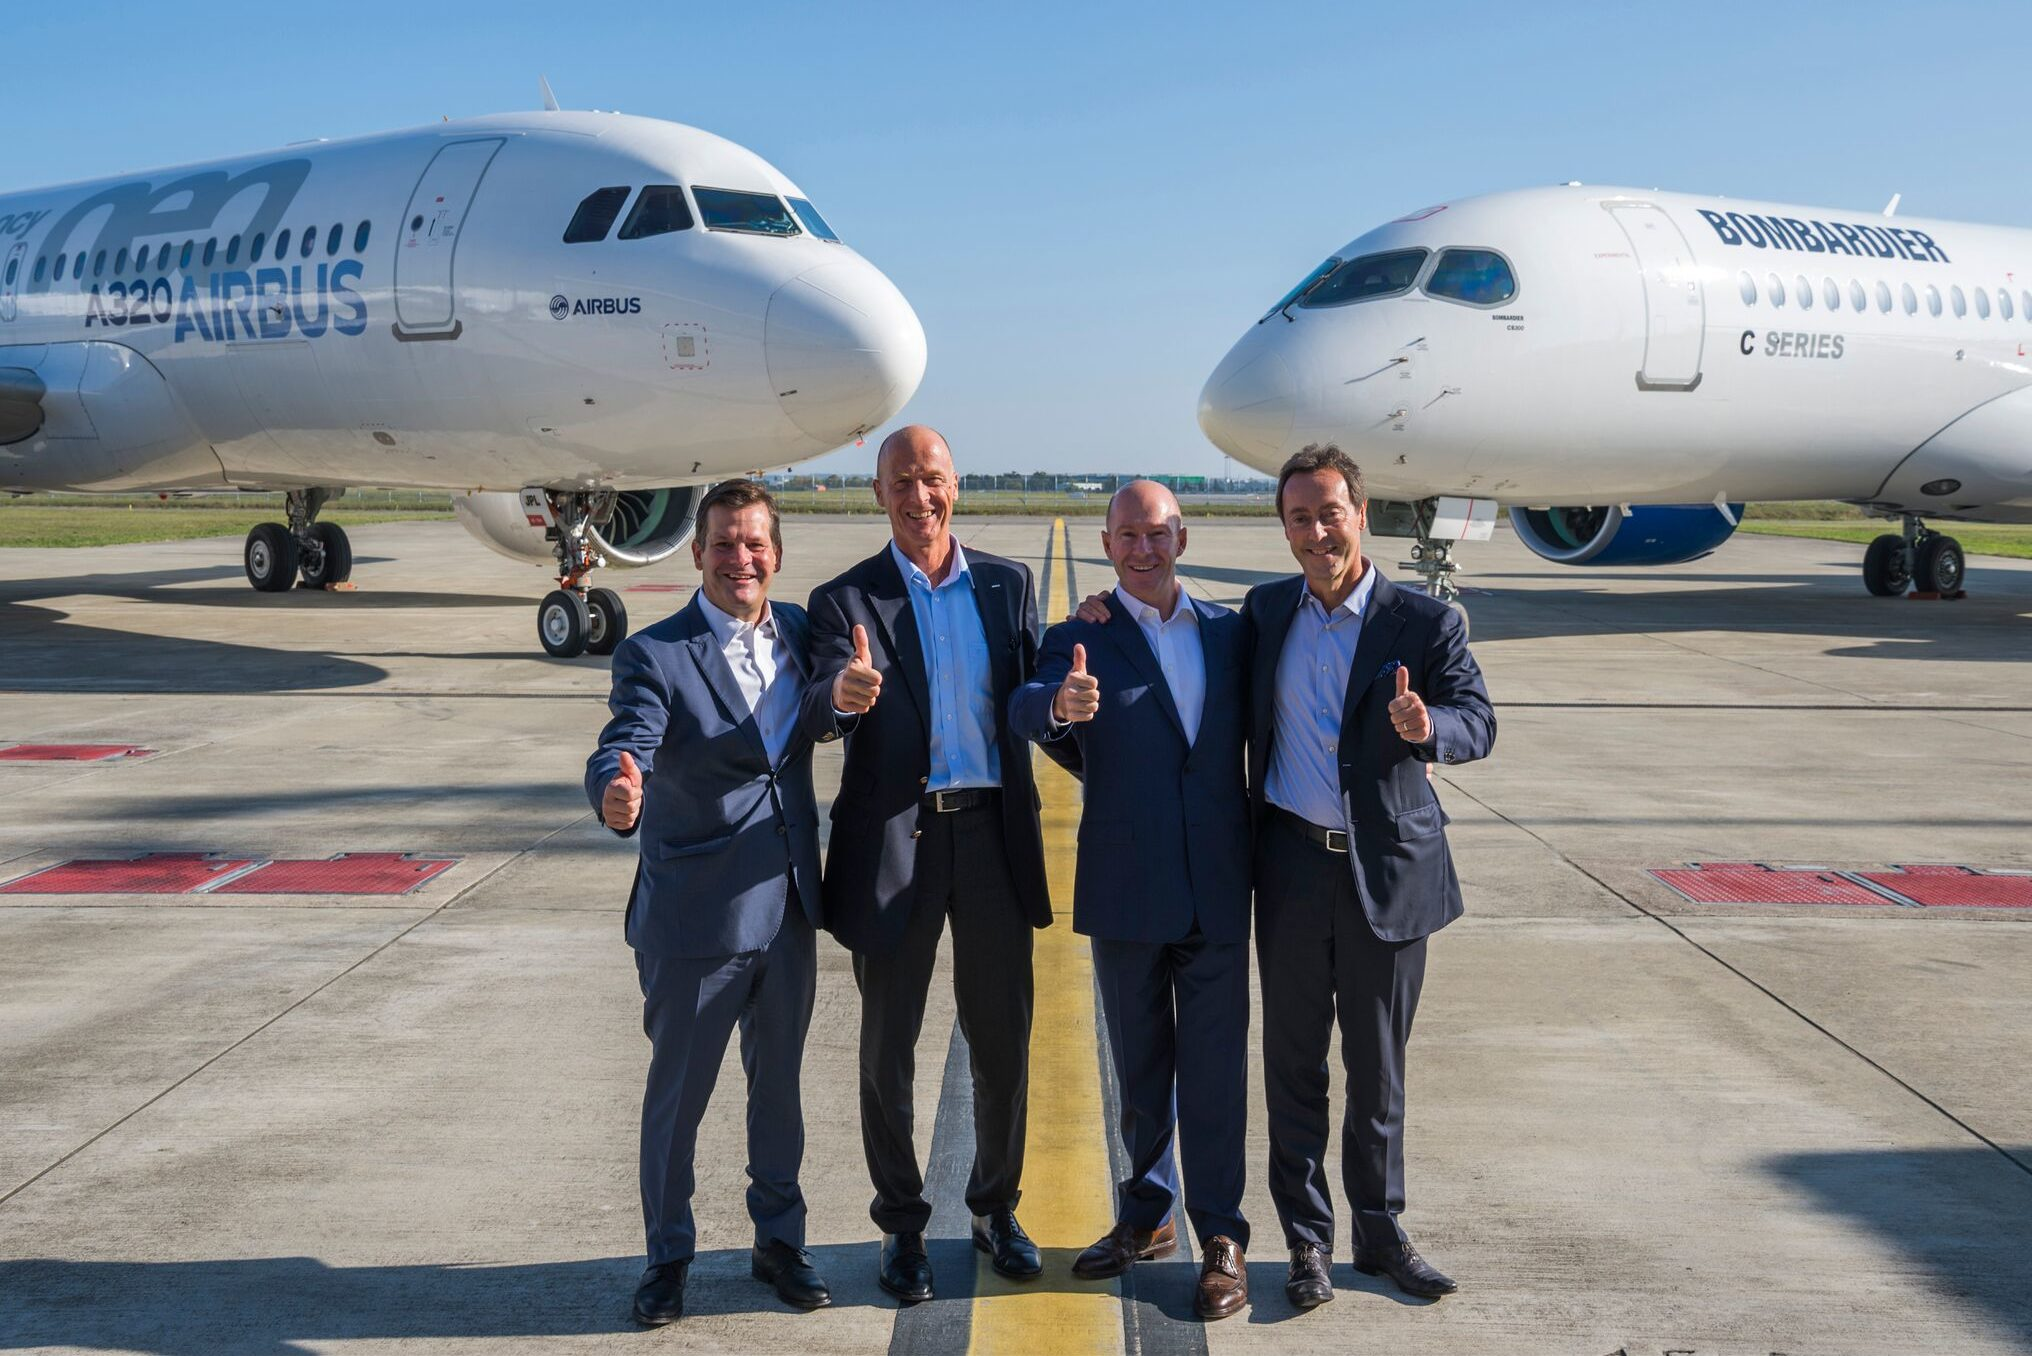 From left to right: Pierre Beaudoin, Bombardier chairman of the board; Tom Enders, Airbus CEO; Alain Bellemare, Bombardier president and chief executive officer; Fabrice Bregier, Airbus chief operating officer and president of Airbus Commercial Aircraft. Photo courtesy of Airbus